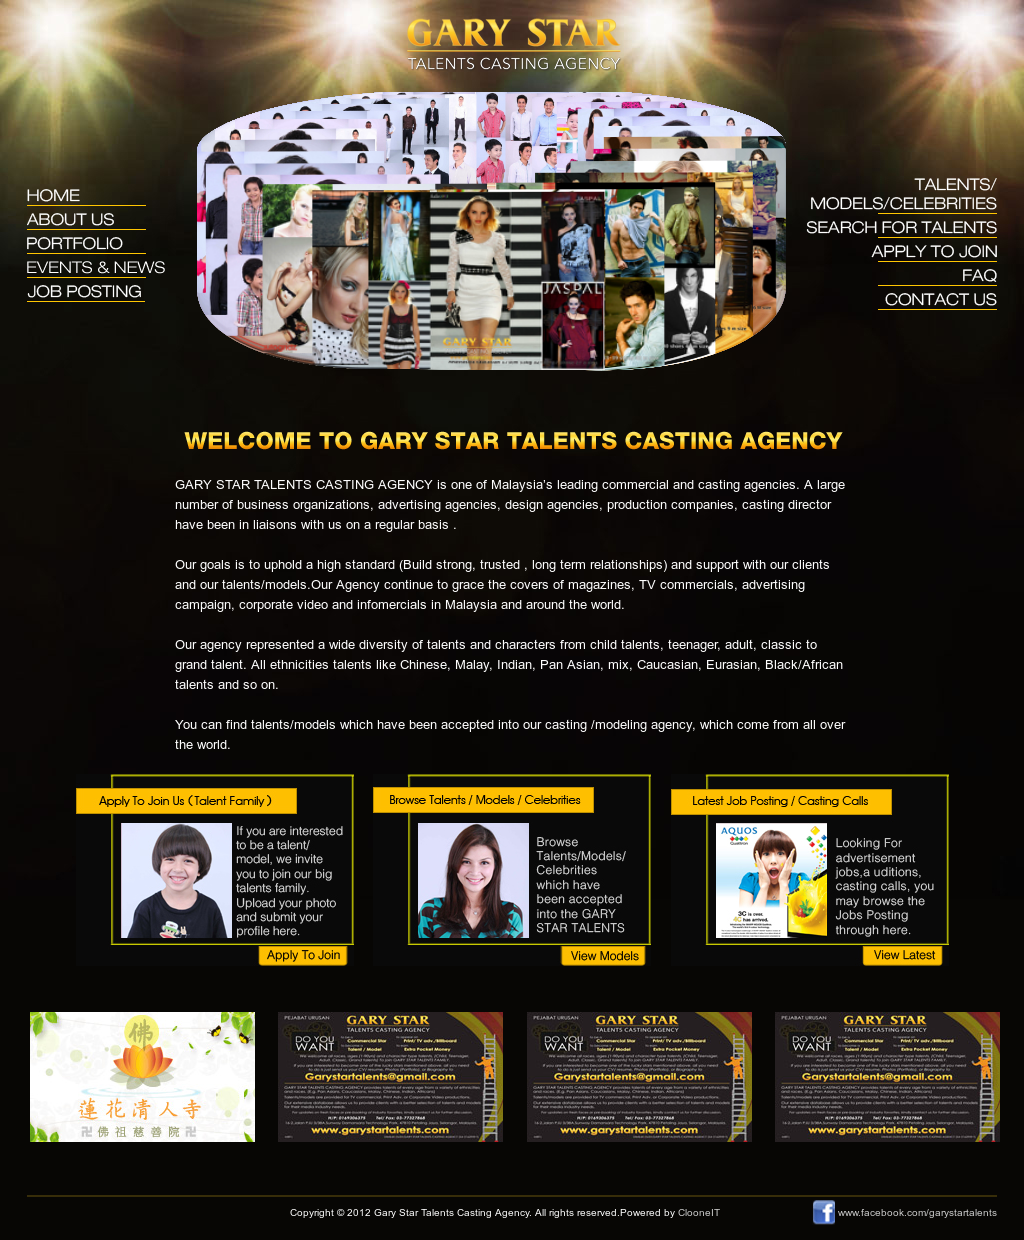 Gary Star Talents Casting Agency Competitors, Revenue and Employees